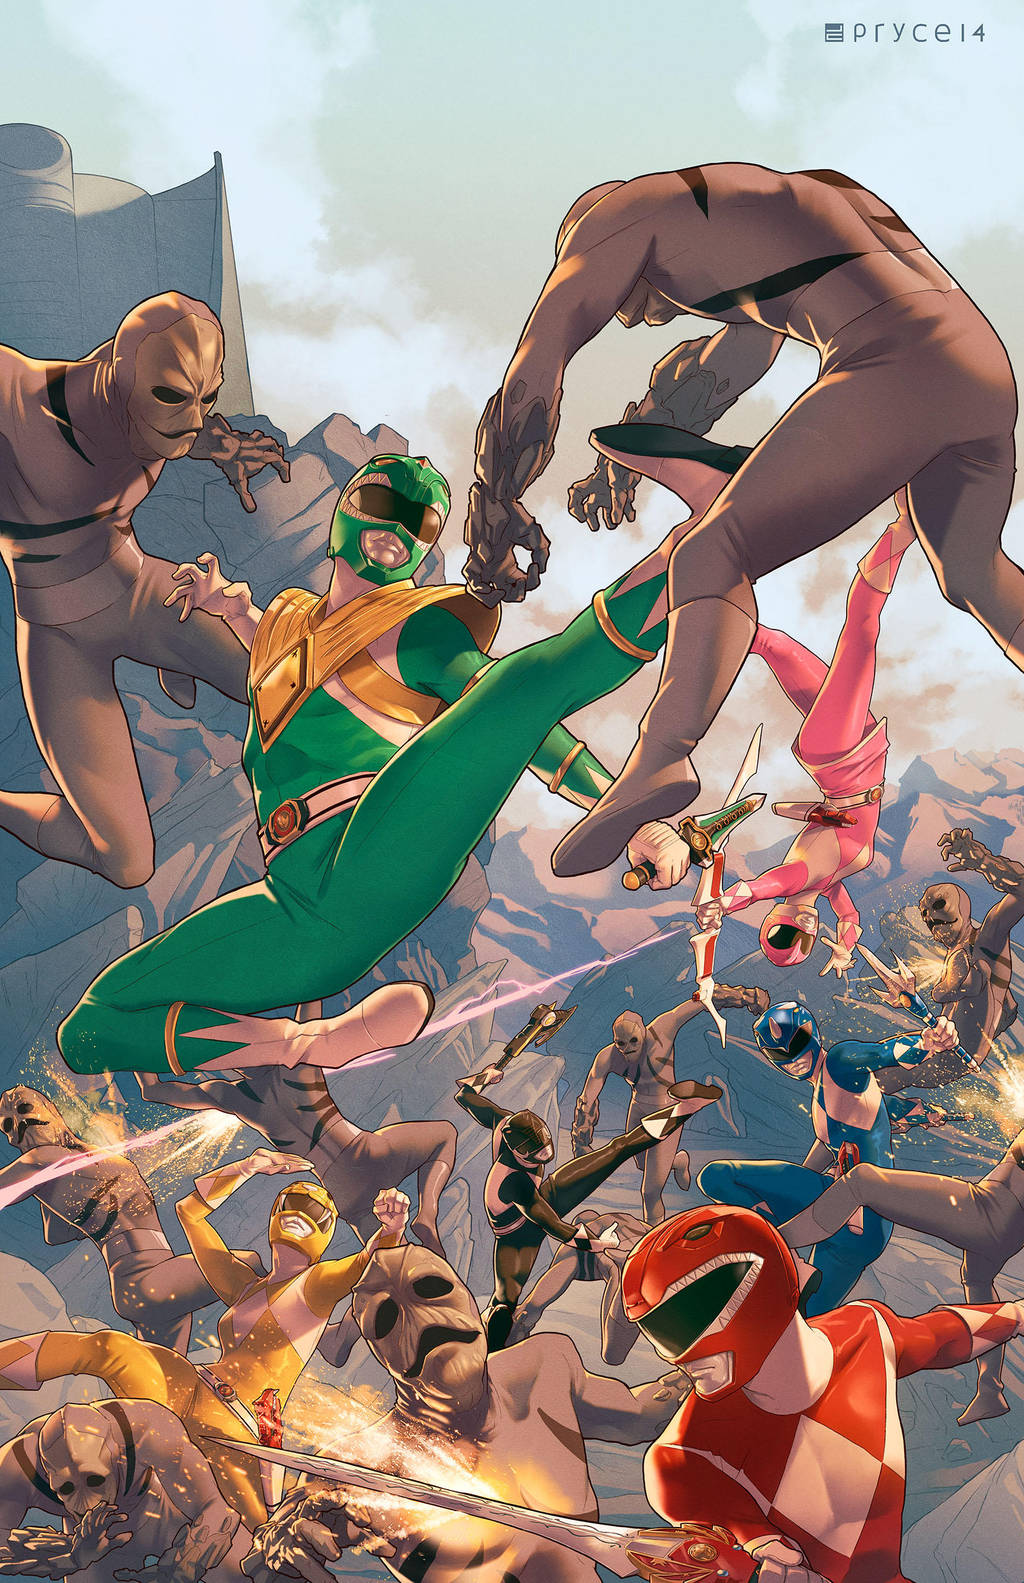 Mighty Morphin Power Rangers #1 by Pryce14